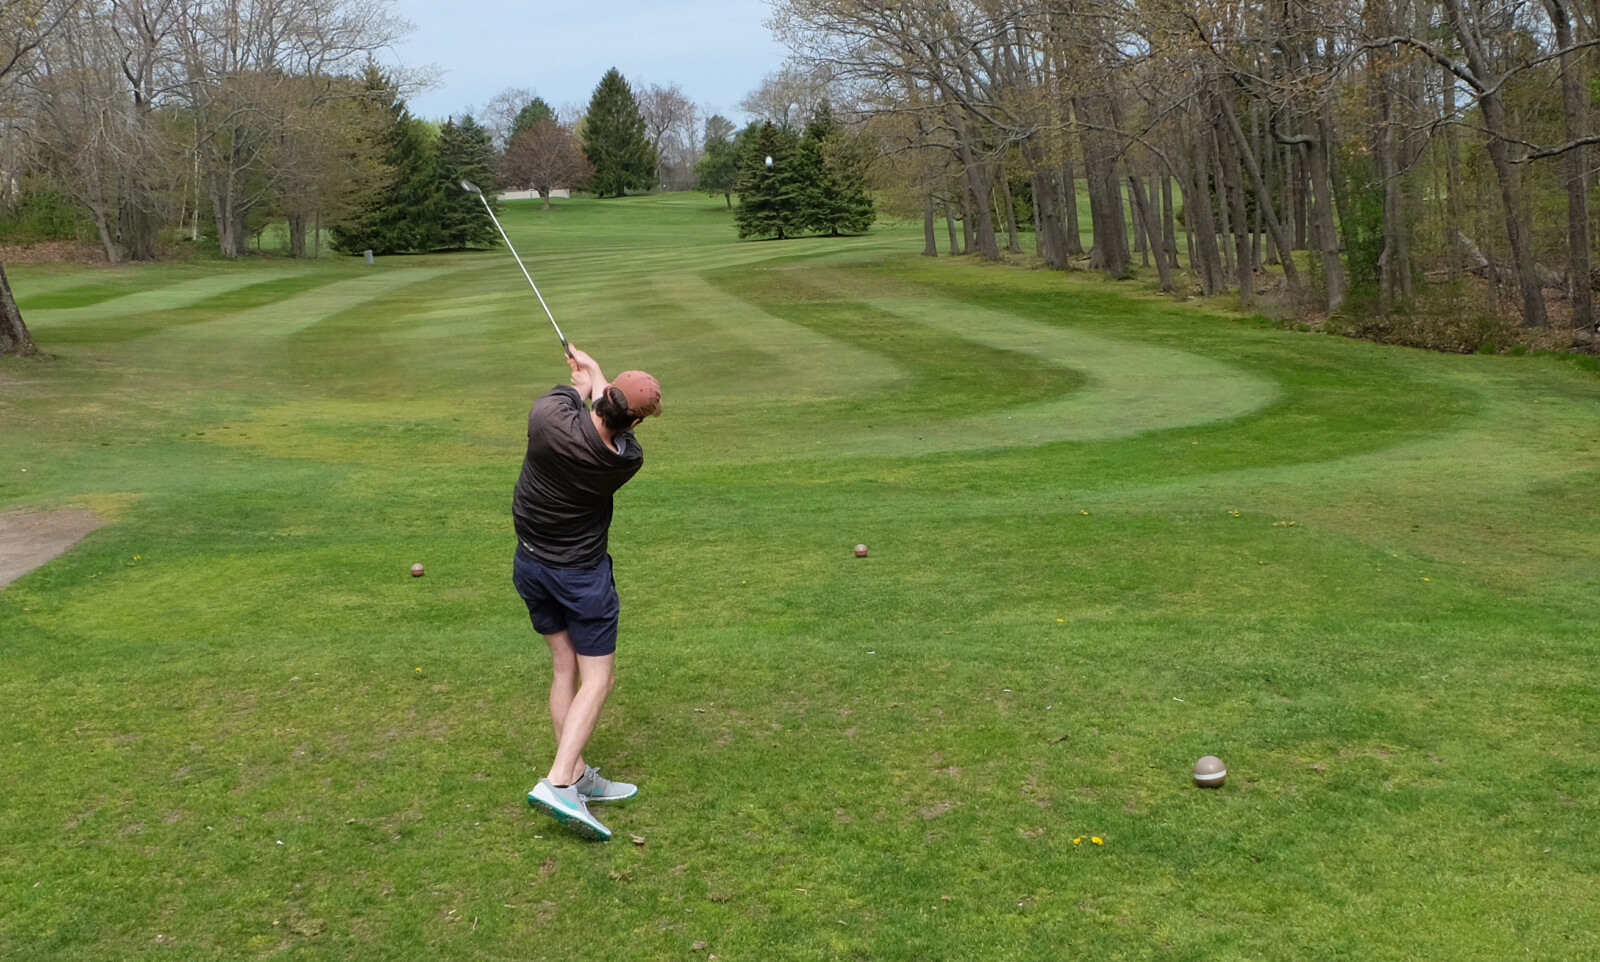 Local Golf Courses Reopen With Limits As Covid 19 Restrictions Loosen Portland Press Herald